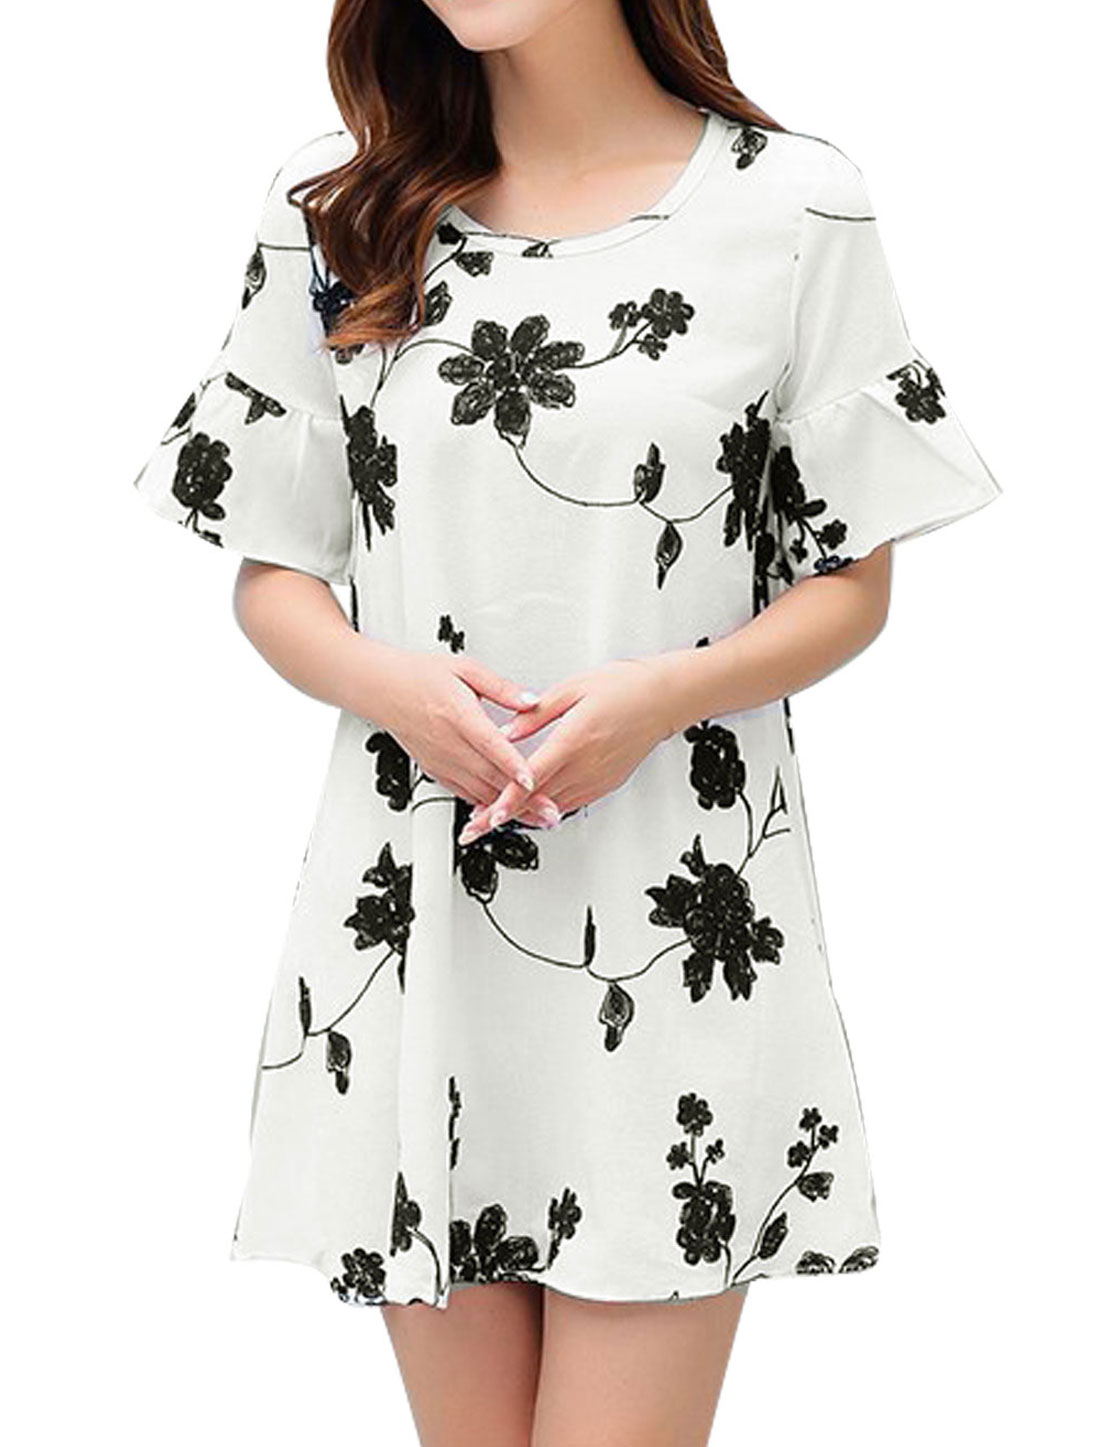 Women Round Neck Short Sleeves Flower Embroidery A Line Dress White M